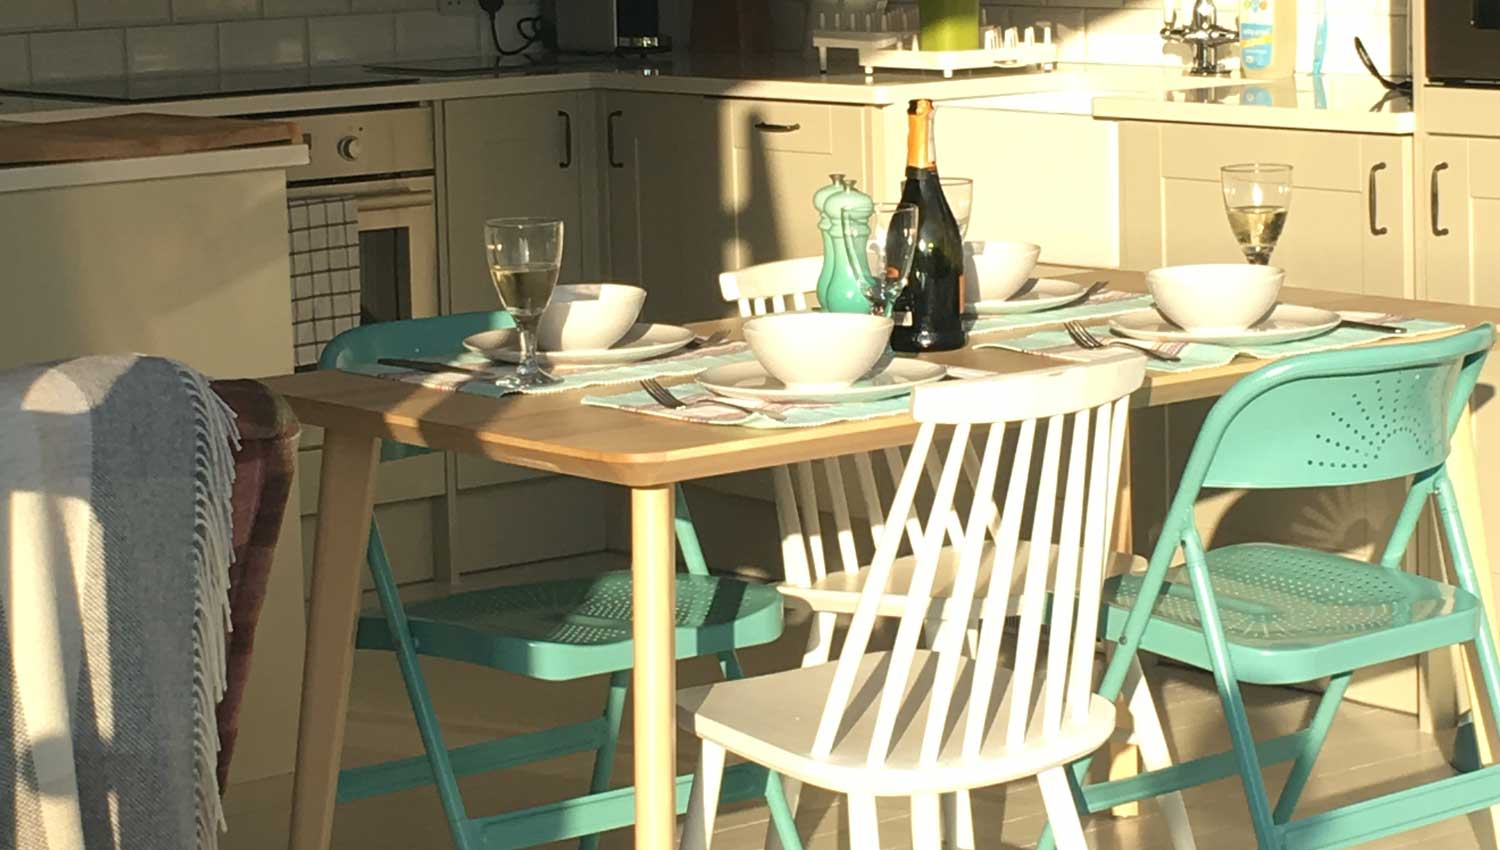 Owlers Retreat Camber Sands Holiday Cottage - Slider - Contemporary Kitchen Dining